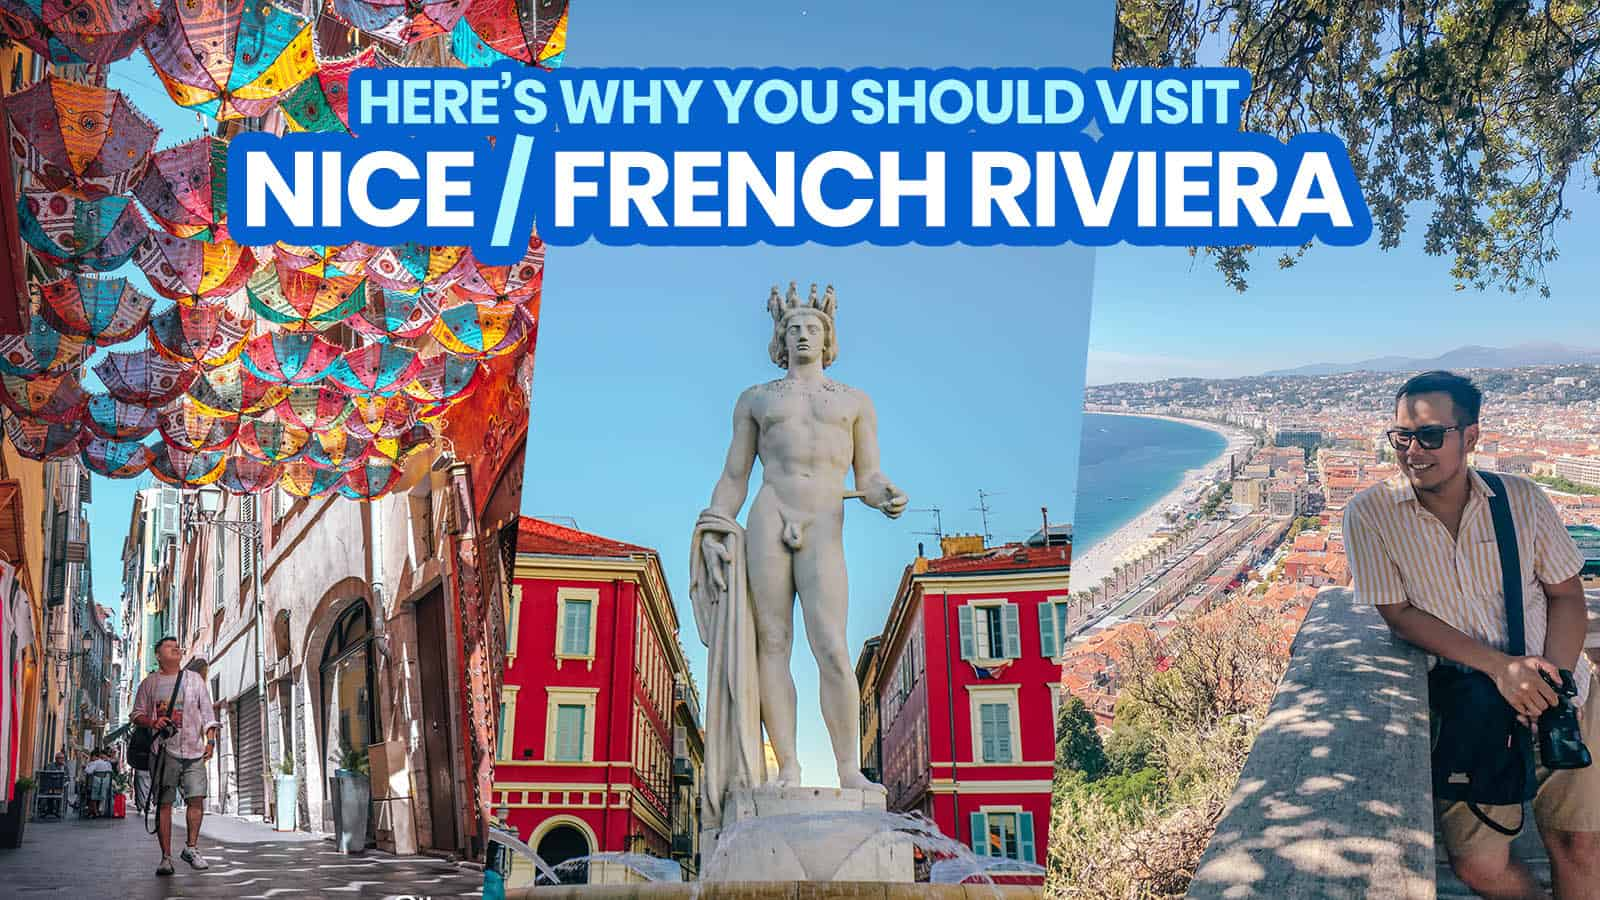 NICE: 28 Best Things to Do & Places to Visit (South of France)